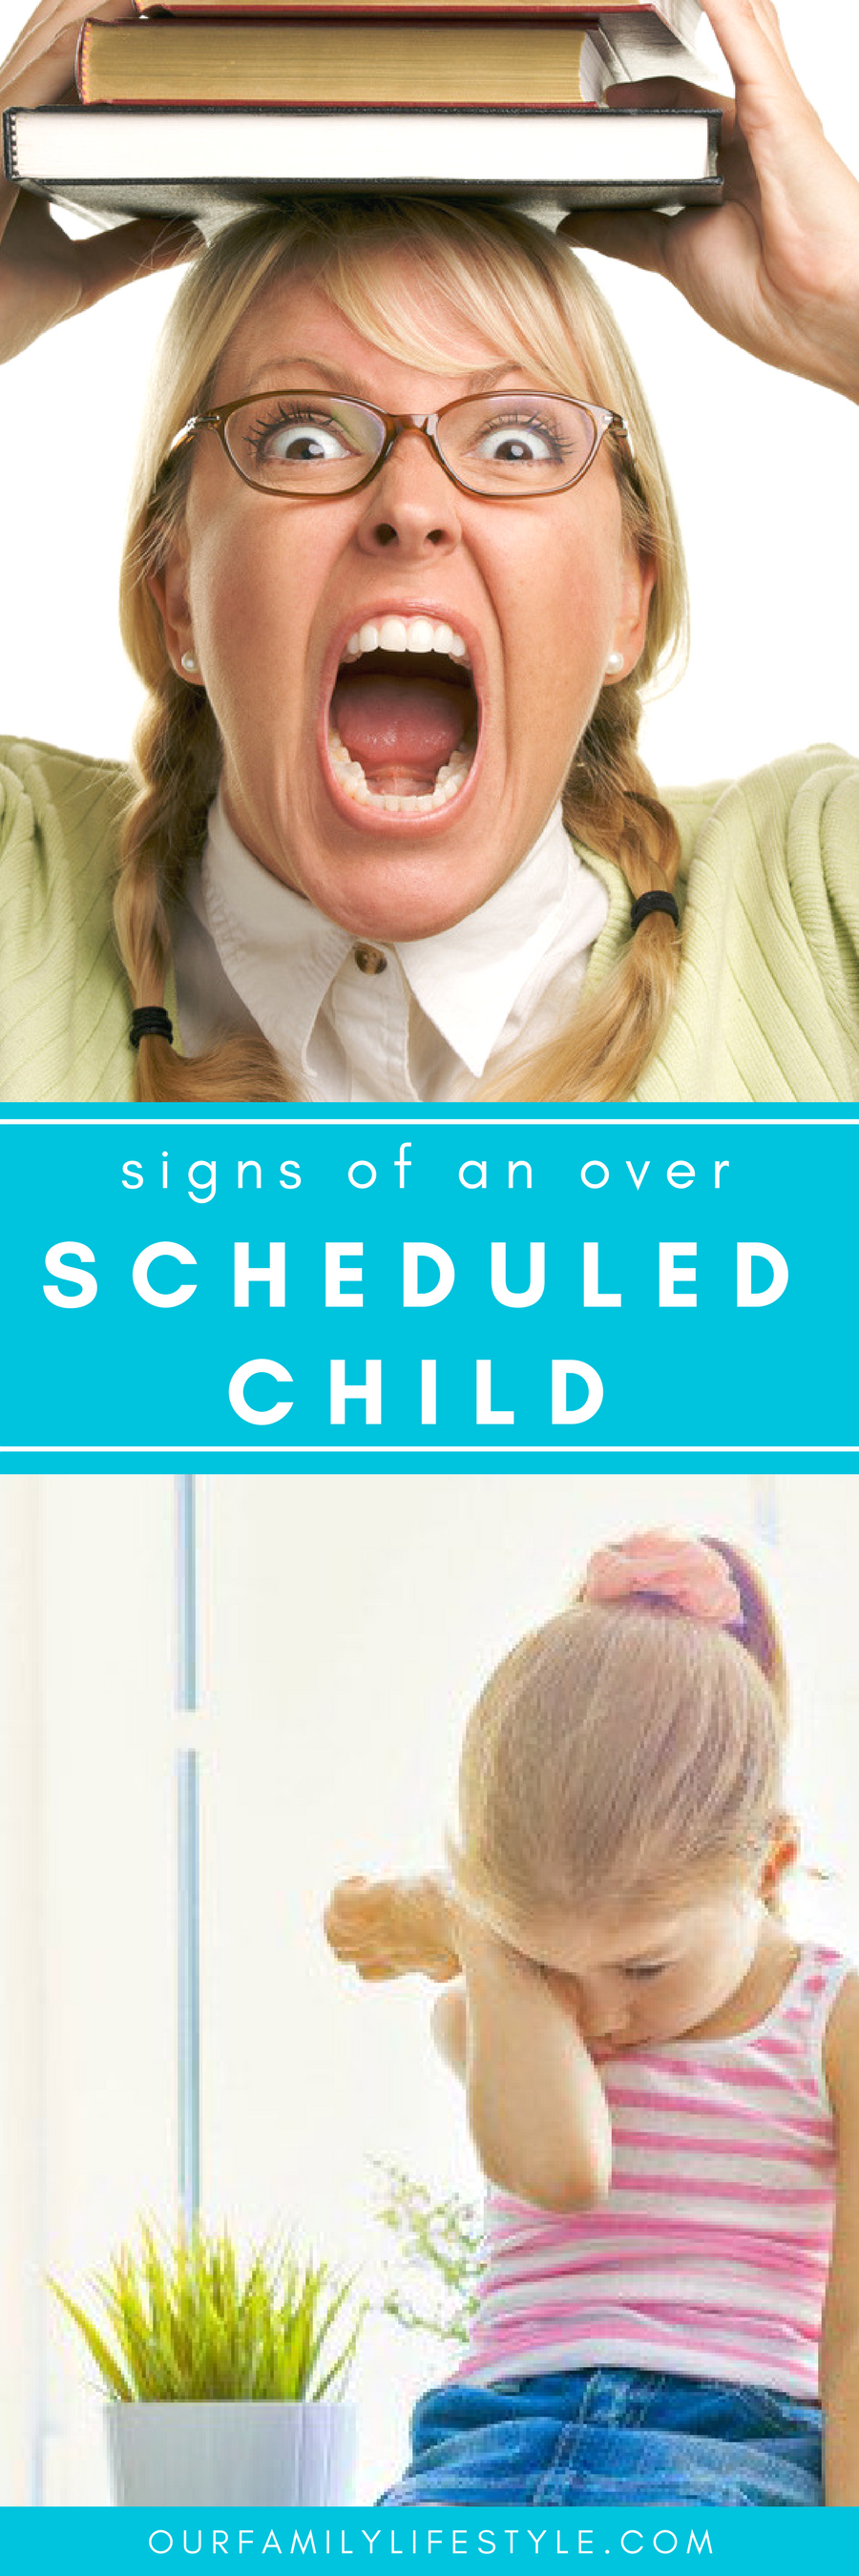 Signs of an over scheduled child can include: irritability, negative, involved in harmful behaviors like hair pulling, cutting or abusing drugs and alcohol.